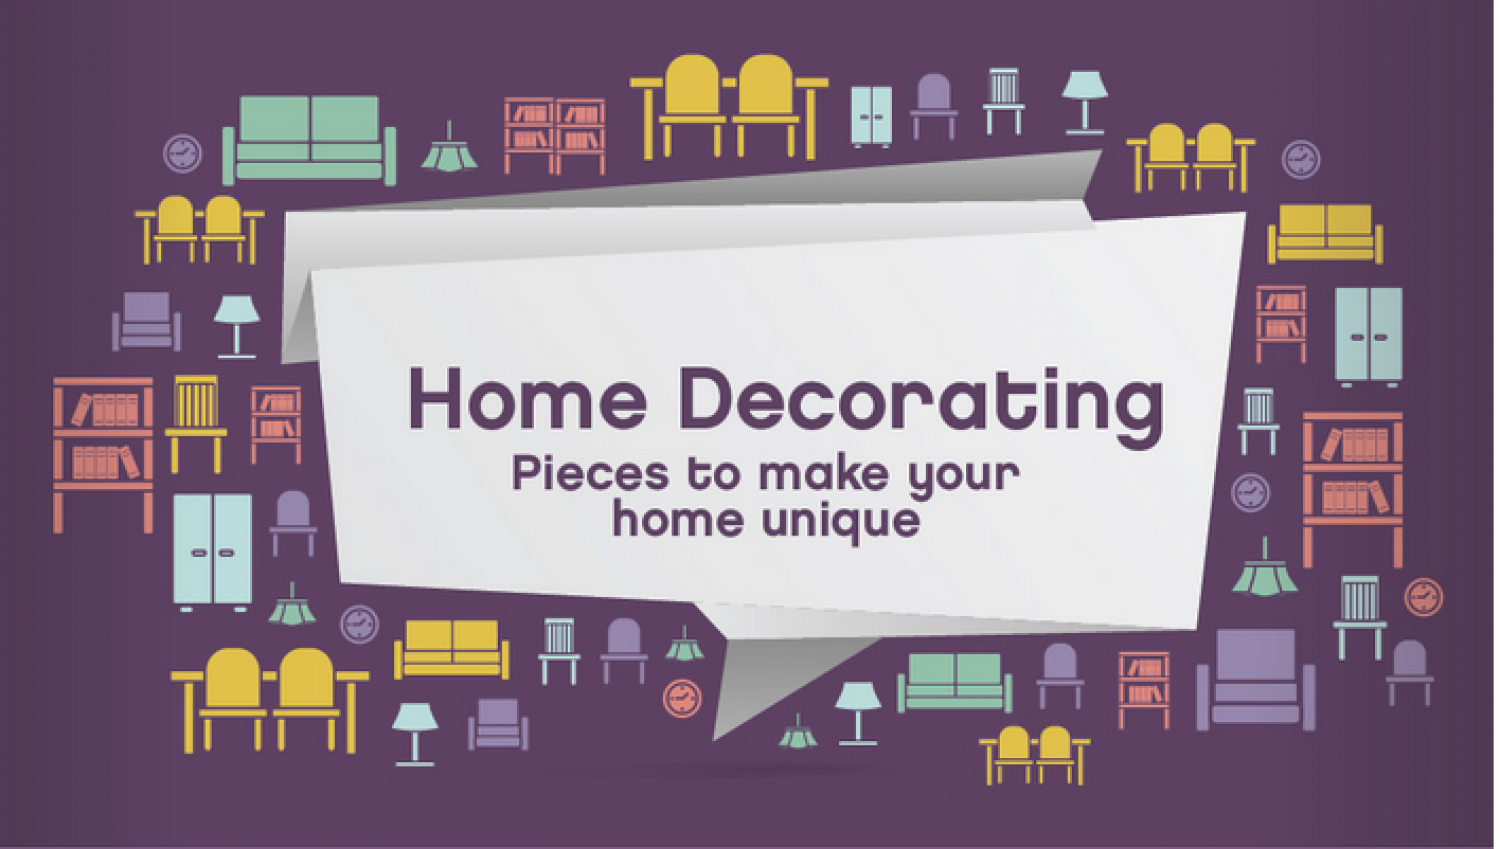 Home Decorating Infographic